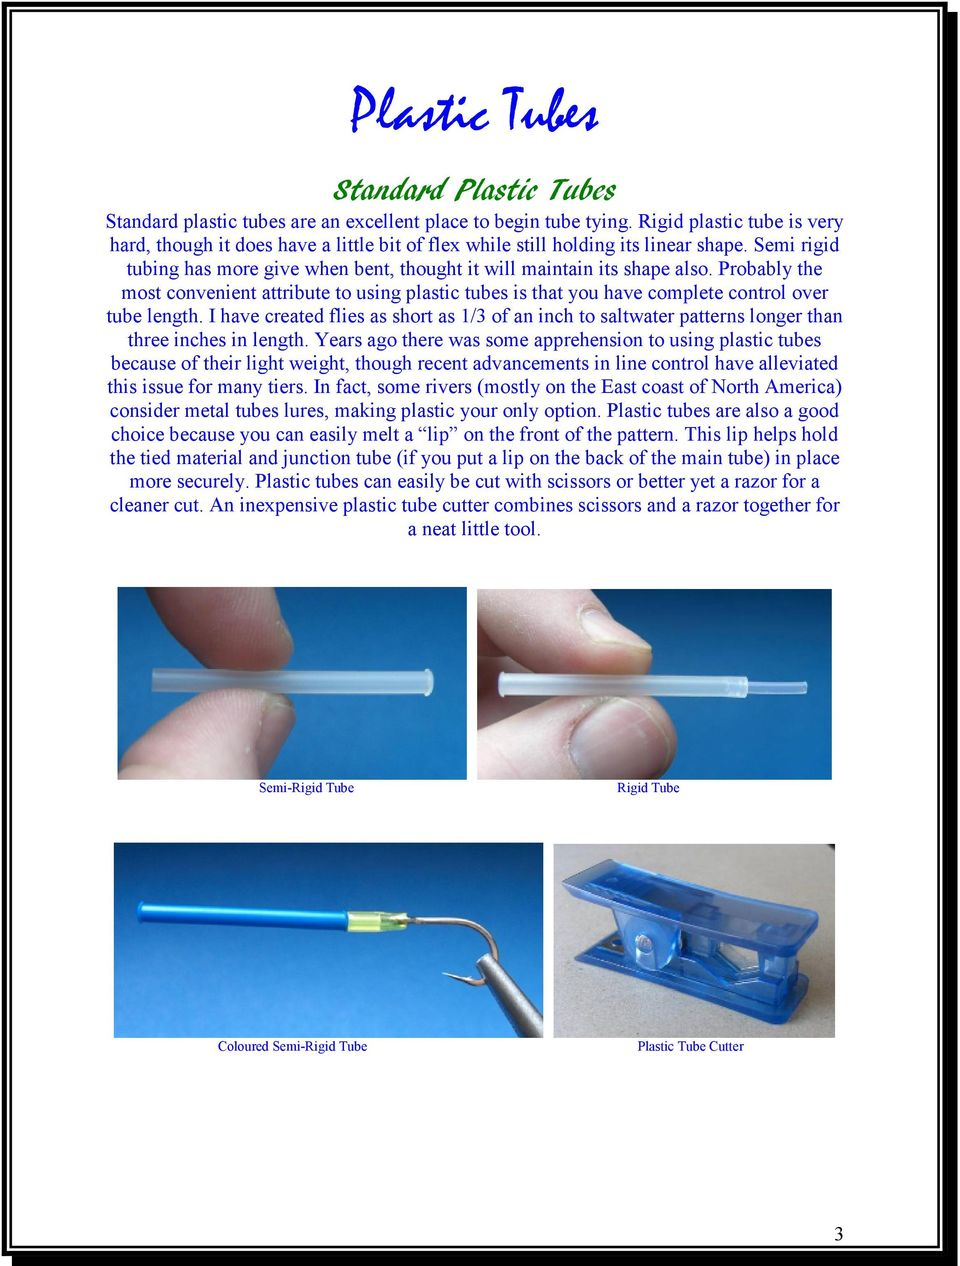 Probably the most convenient attribute to using plastic tubes is that you have complete control over tube length.